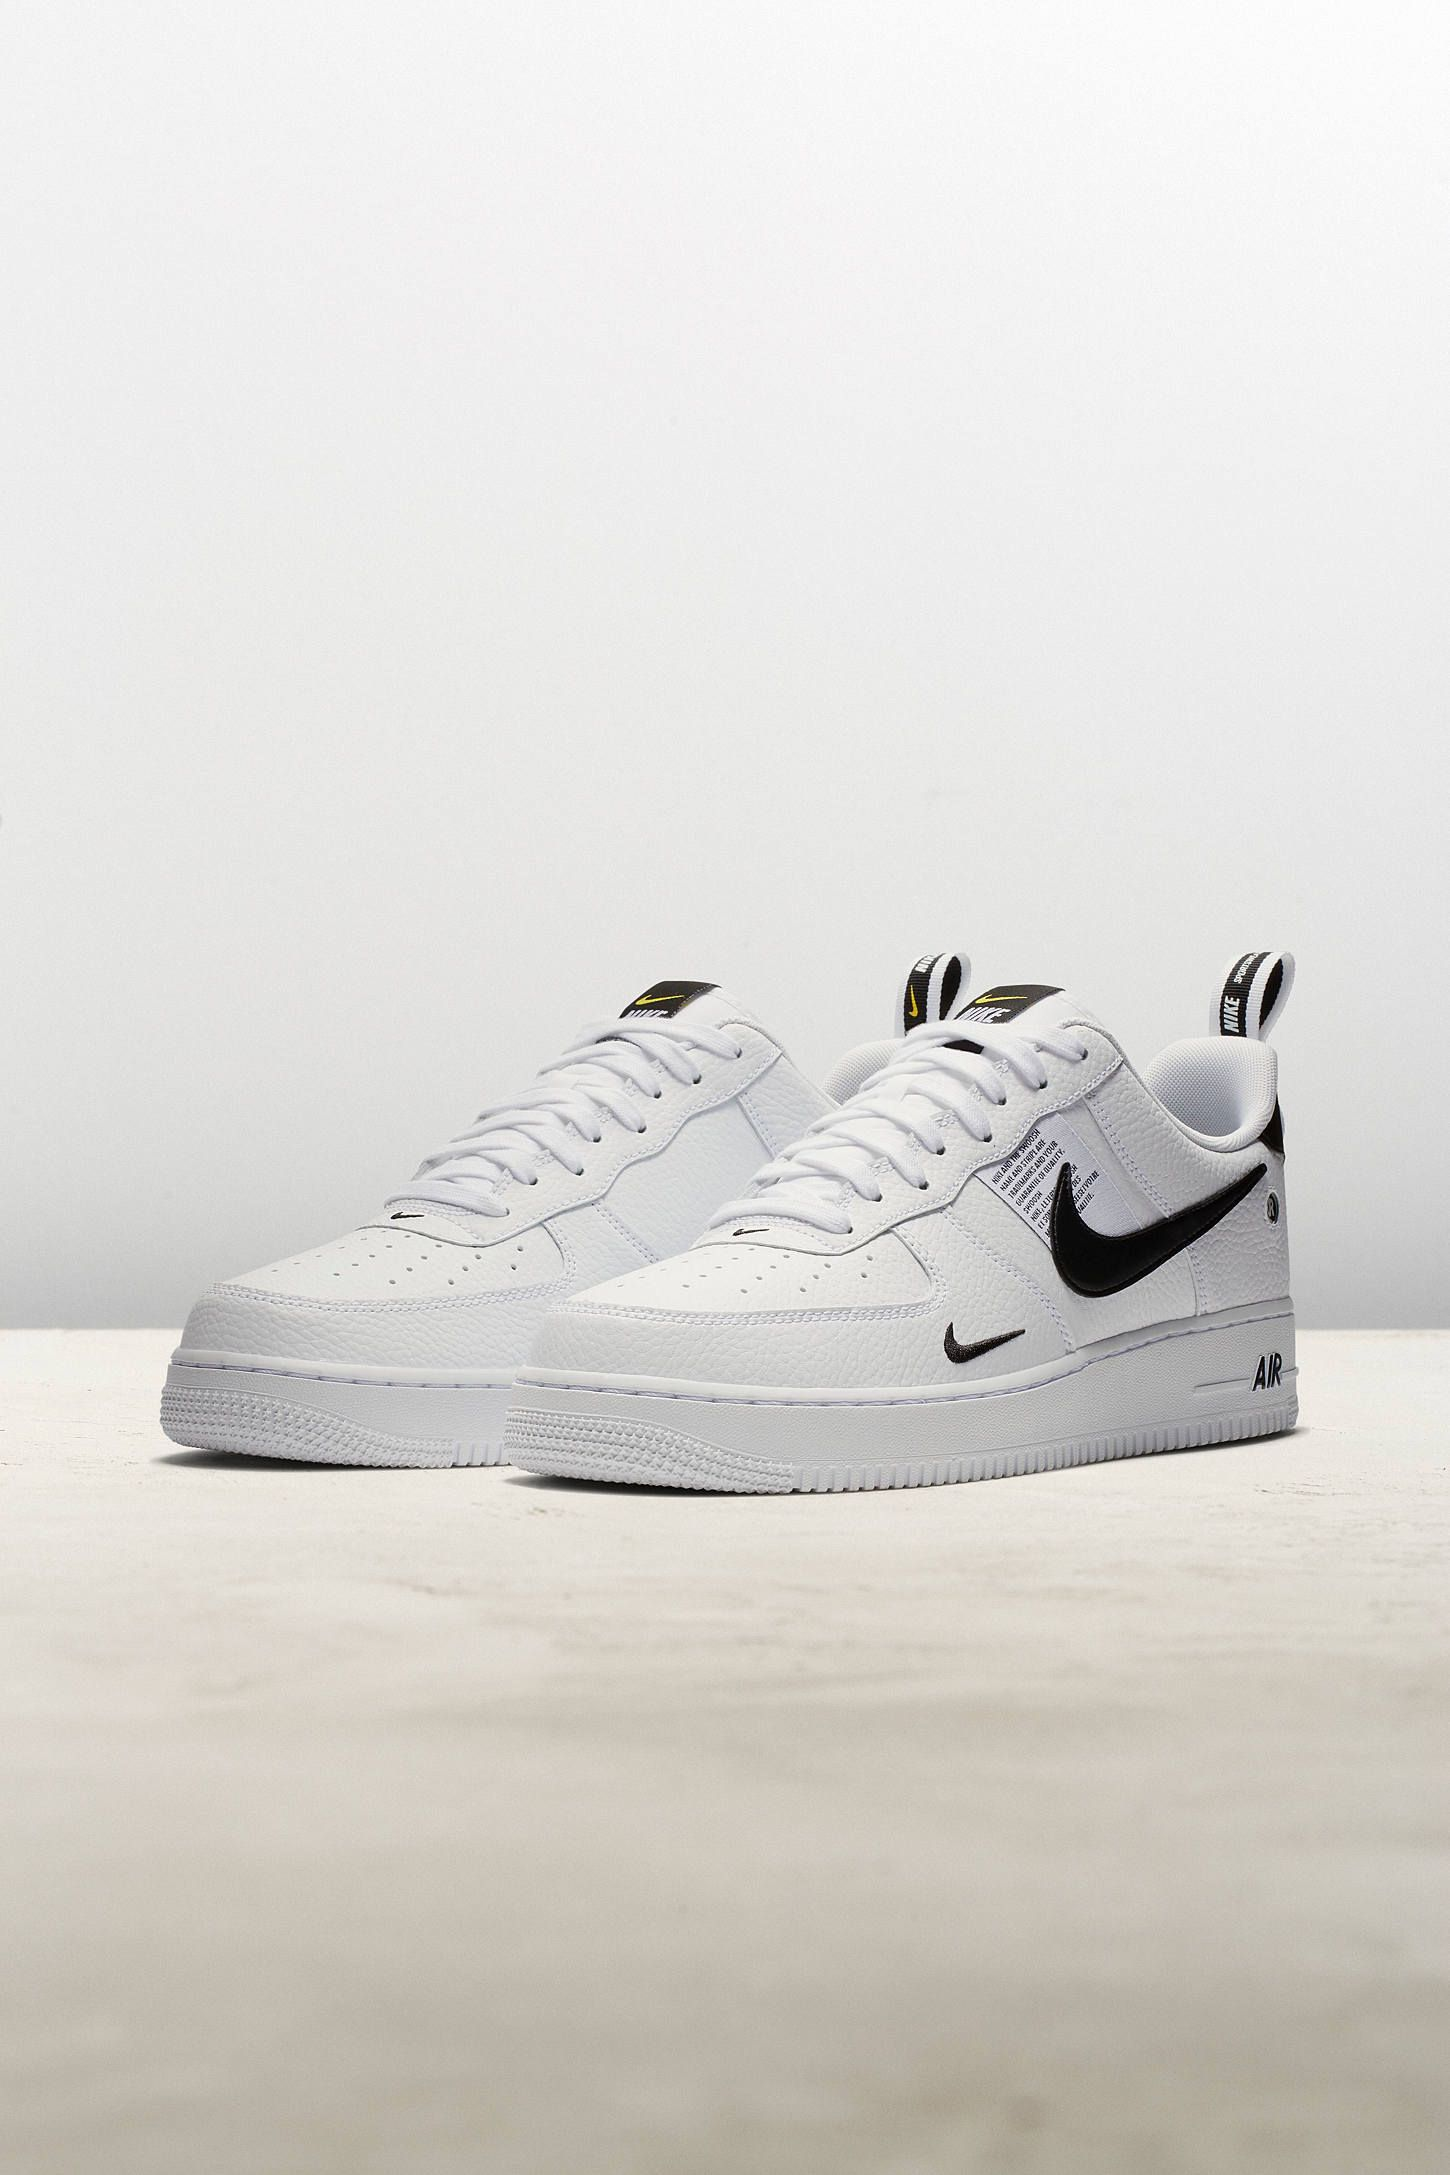 bc8ce6879a Nike Air Force 1 '07 LV8 Utility Sneaker | Tags: sneakers, low tops, white  leather